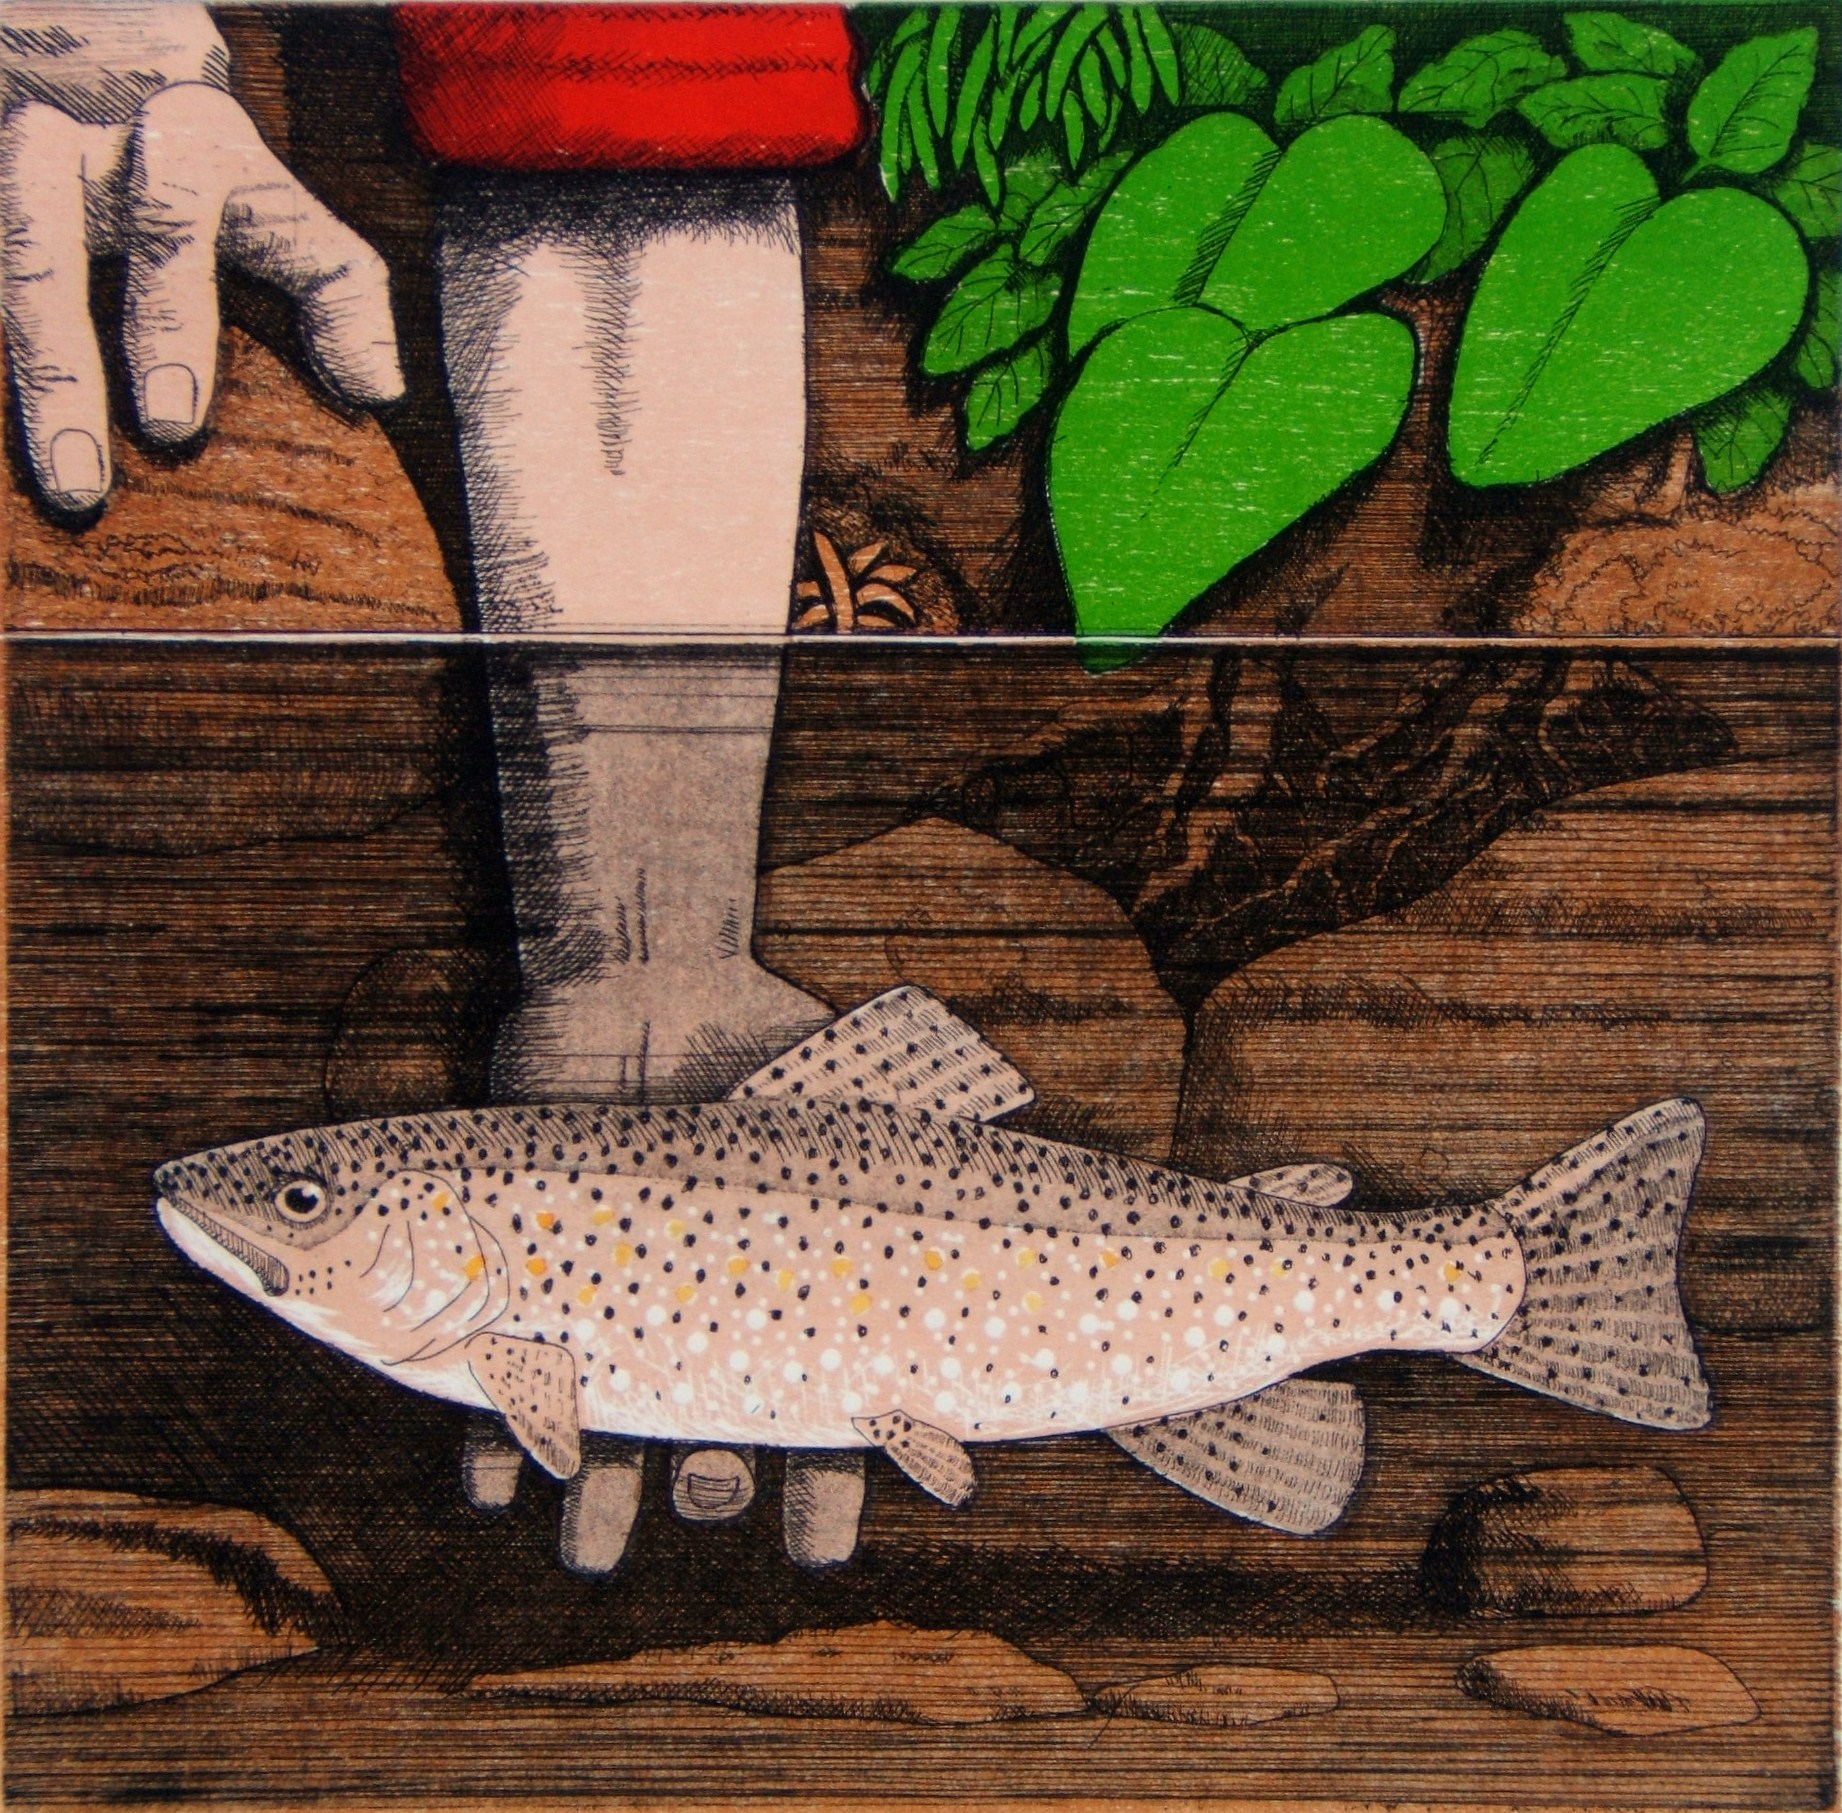 Tickling trout, etching with relief, 30x30 cm.